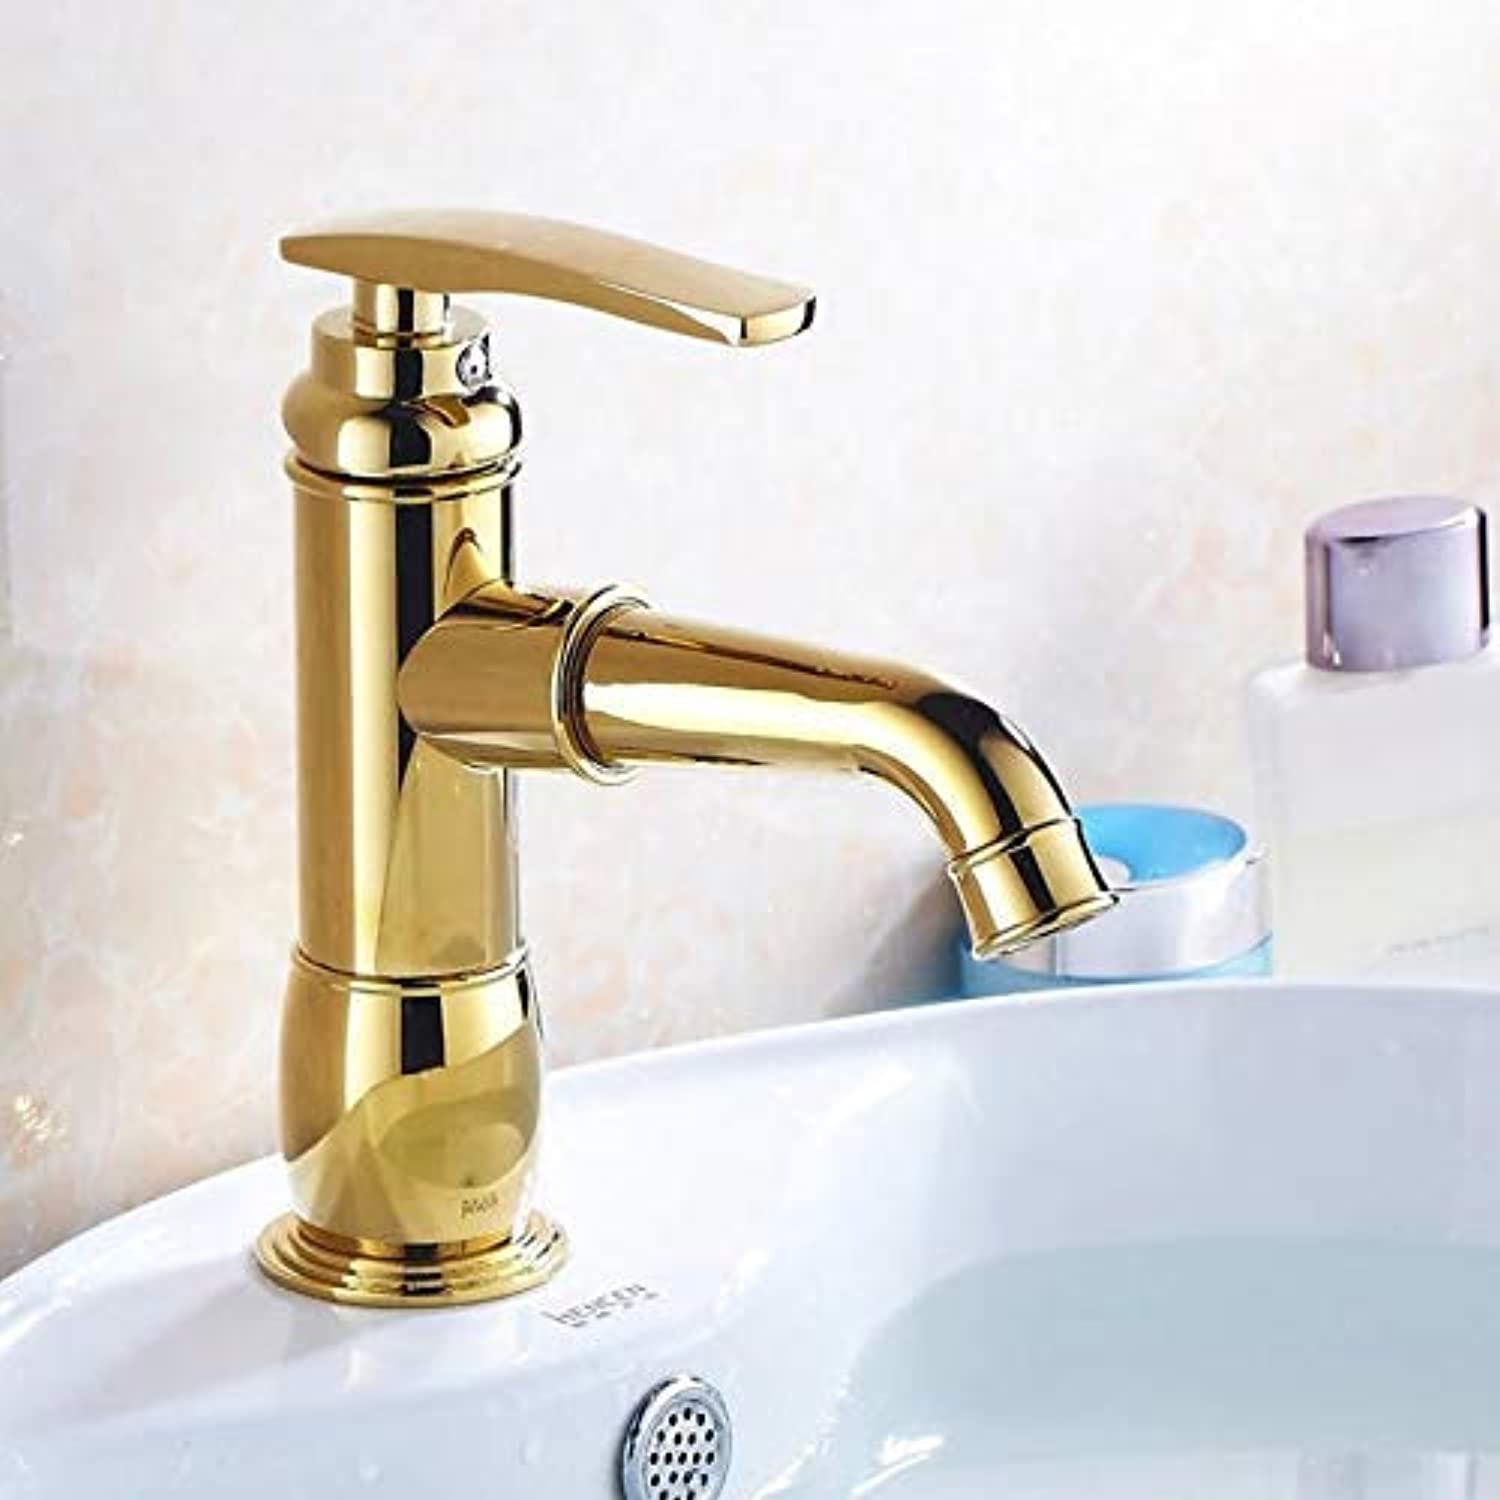 MONFS-Bathroom tap Taps gold-Plated Faucet Copper Single-Hole Basin Mixer Hot And Cold